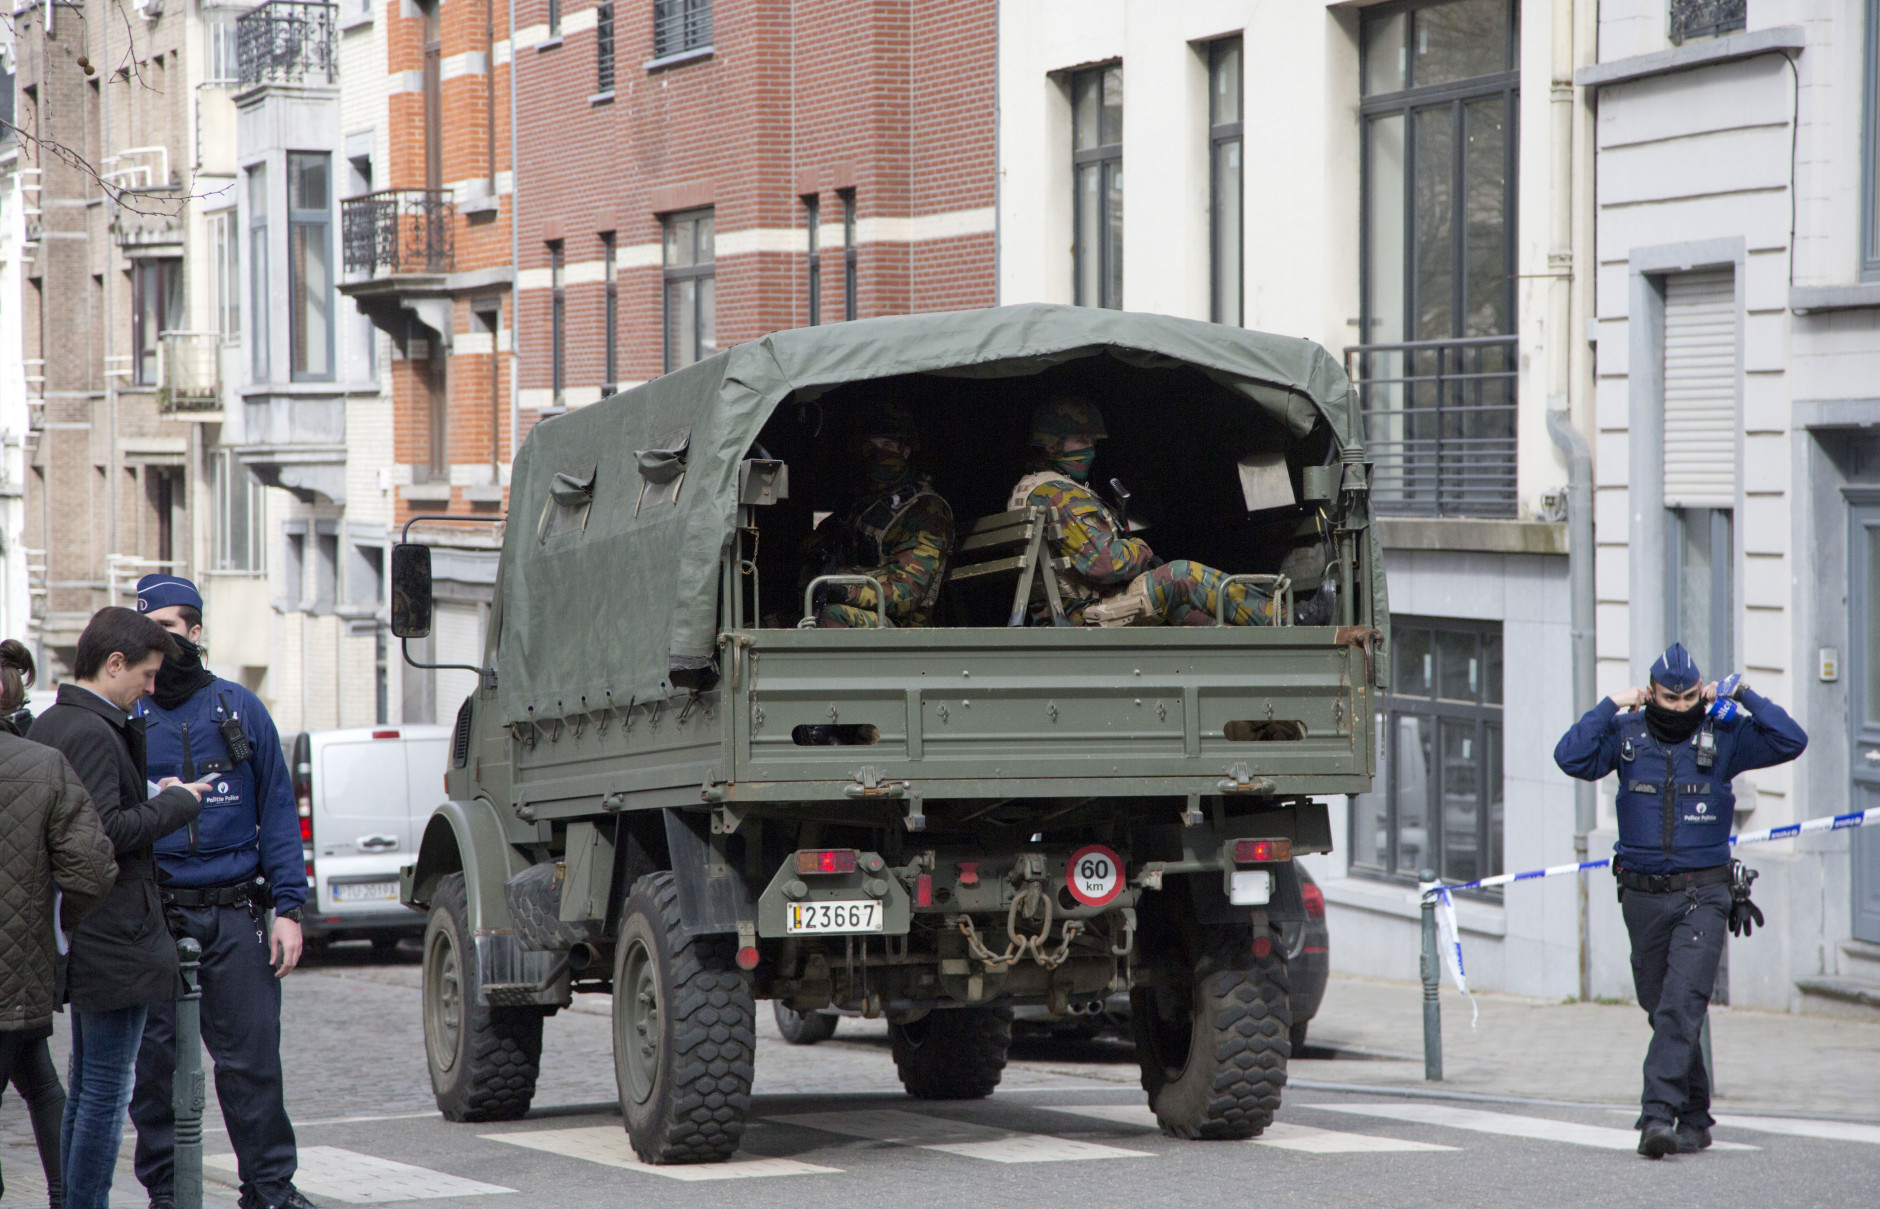 A truck carrying soldiers of the Belgian Army arrives after a explosion in a main metro station in Brussels on Tuesday, March 22, 2016. Explosions rocked the Brussels airport and the subway system Tuesday, killing at least 13 people and injuring many others just days after the main suspect in the November Paris attacks was arrested in the city, police said. (AP Photo/Virginia Mayo)